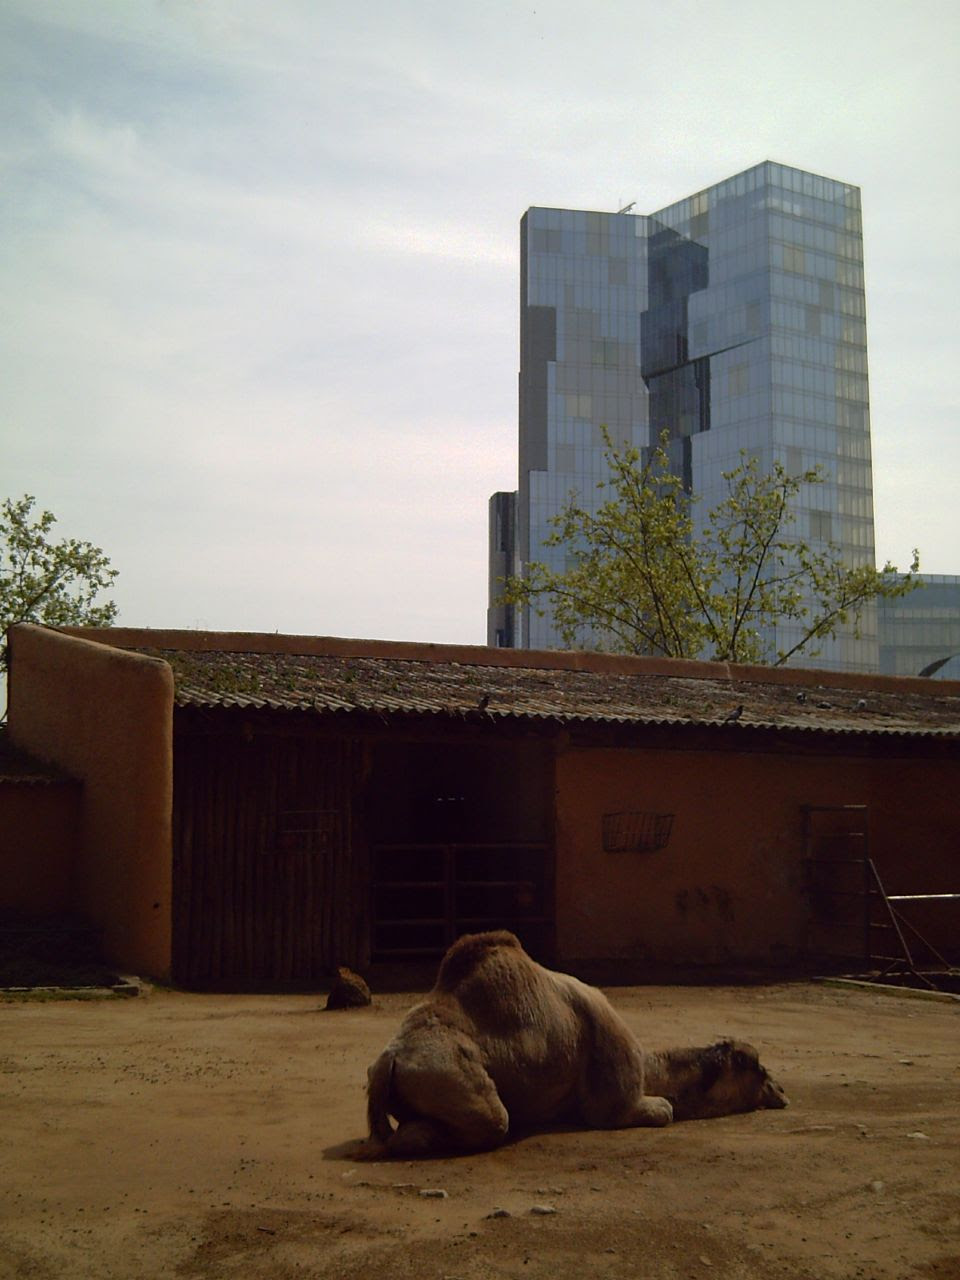 Barcelona Zoo: Dromedary Complains About the Heat